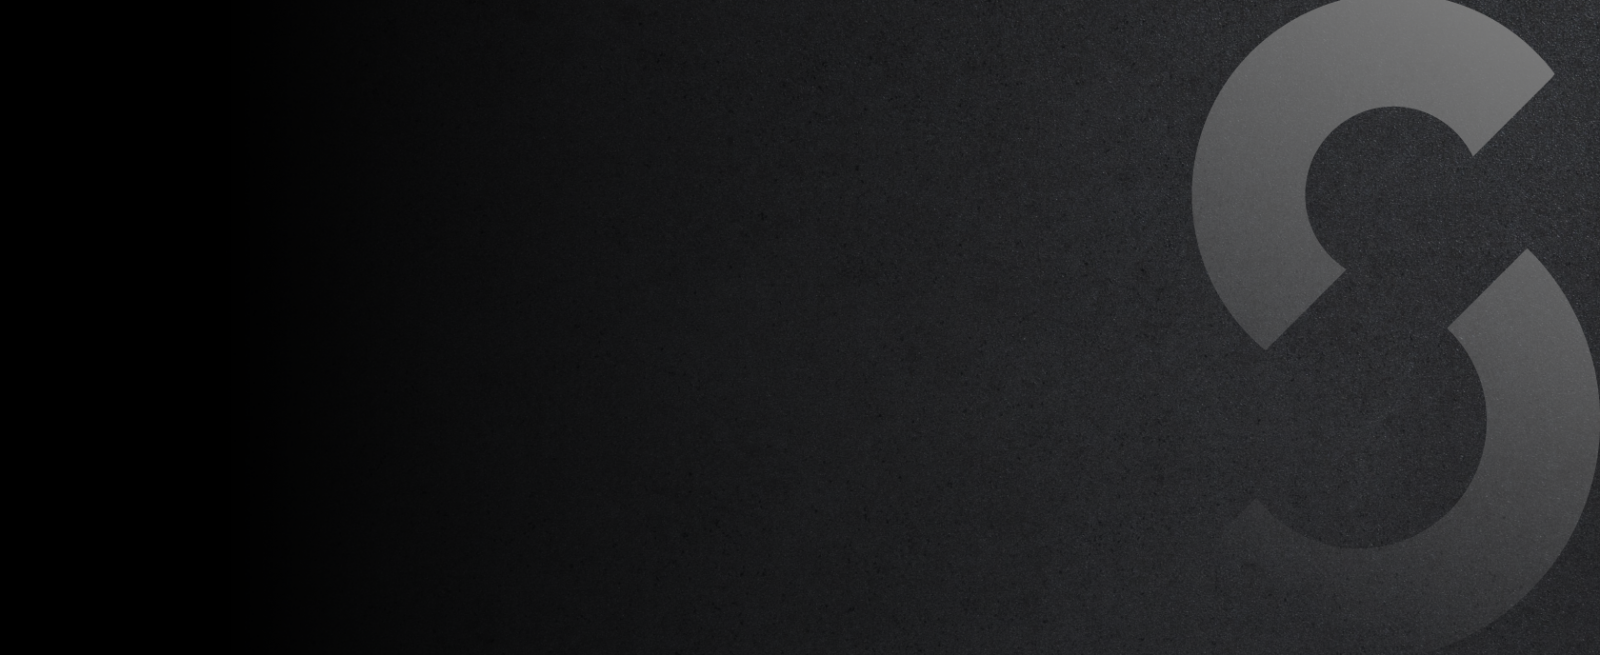 home-banner-1600x655.png